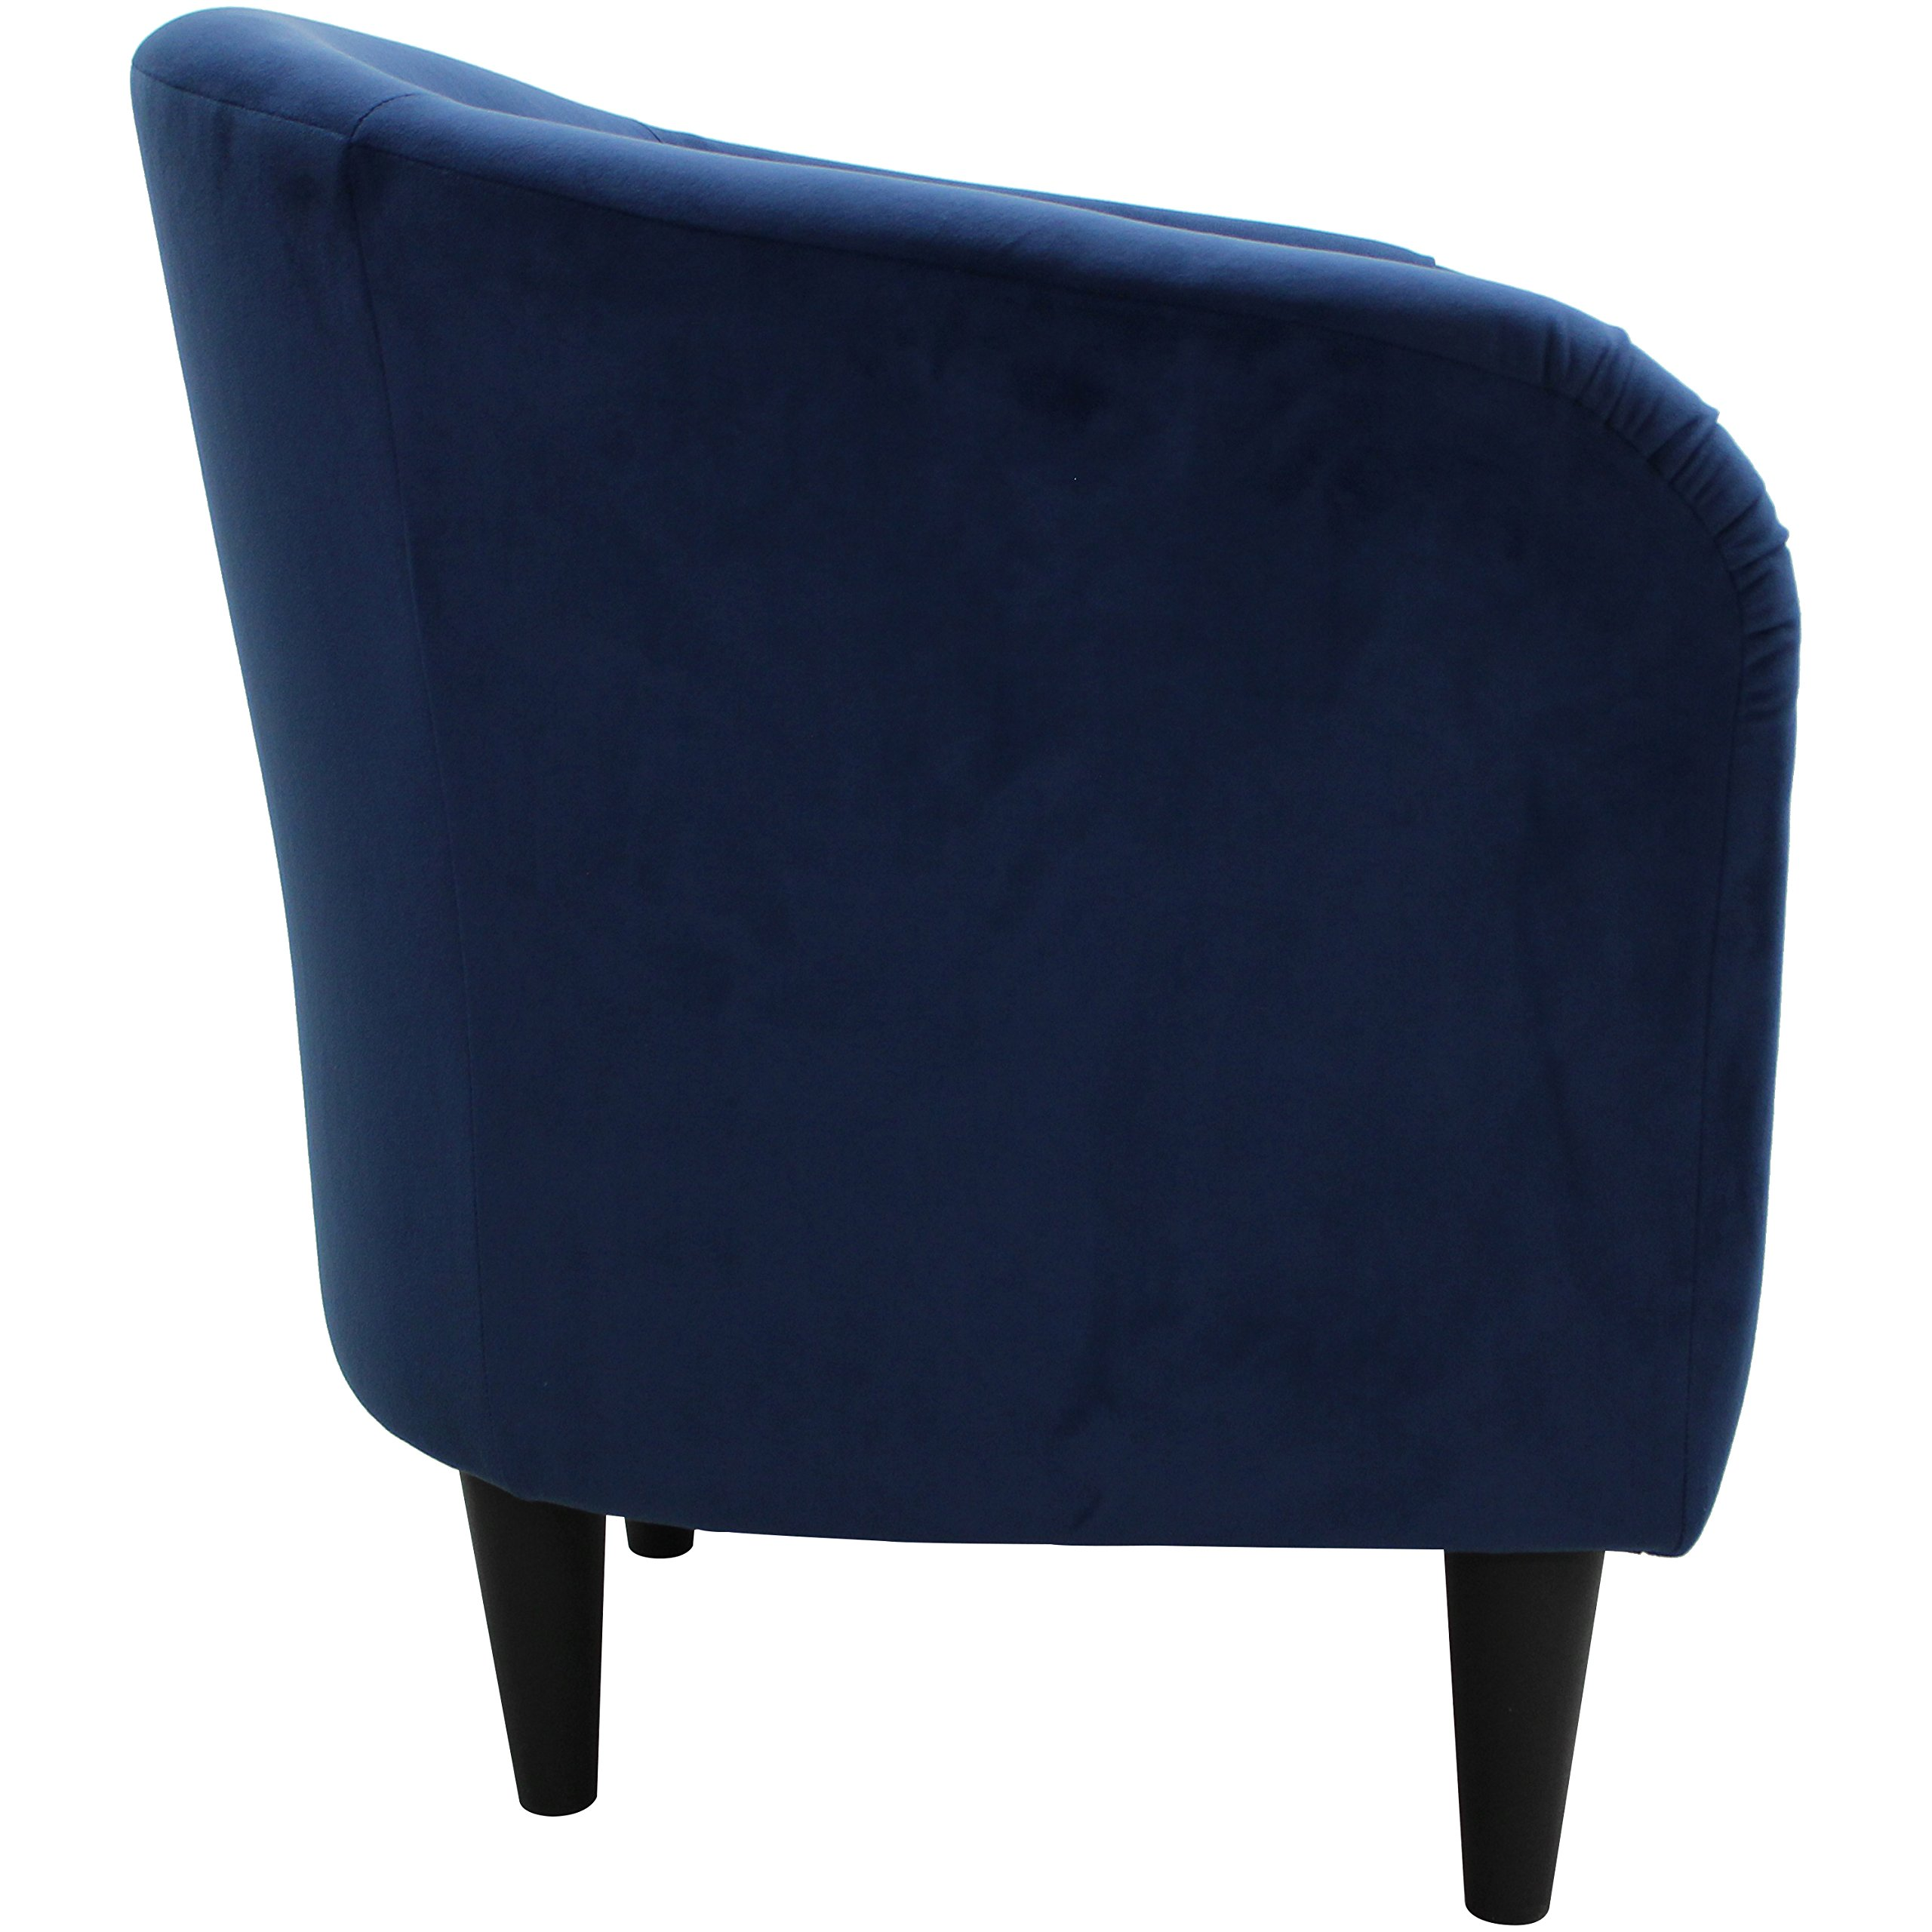 Mainstays Microfiber Tub Accent Chair (Navy Blue) by Mainstay (Image #3)